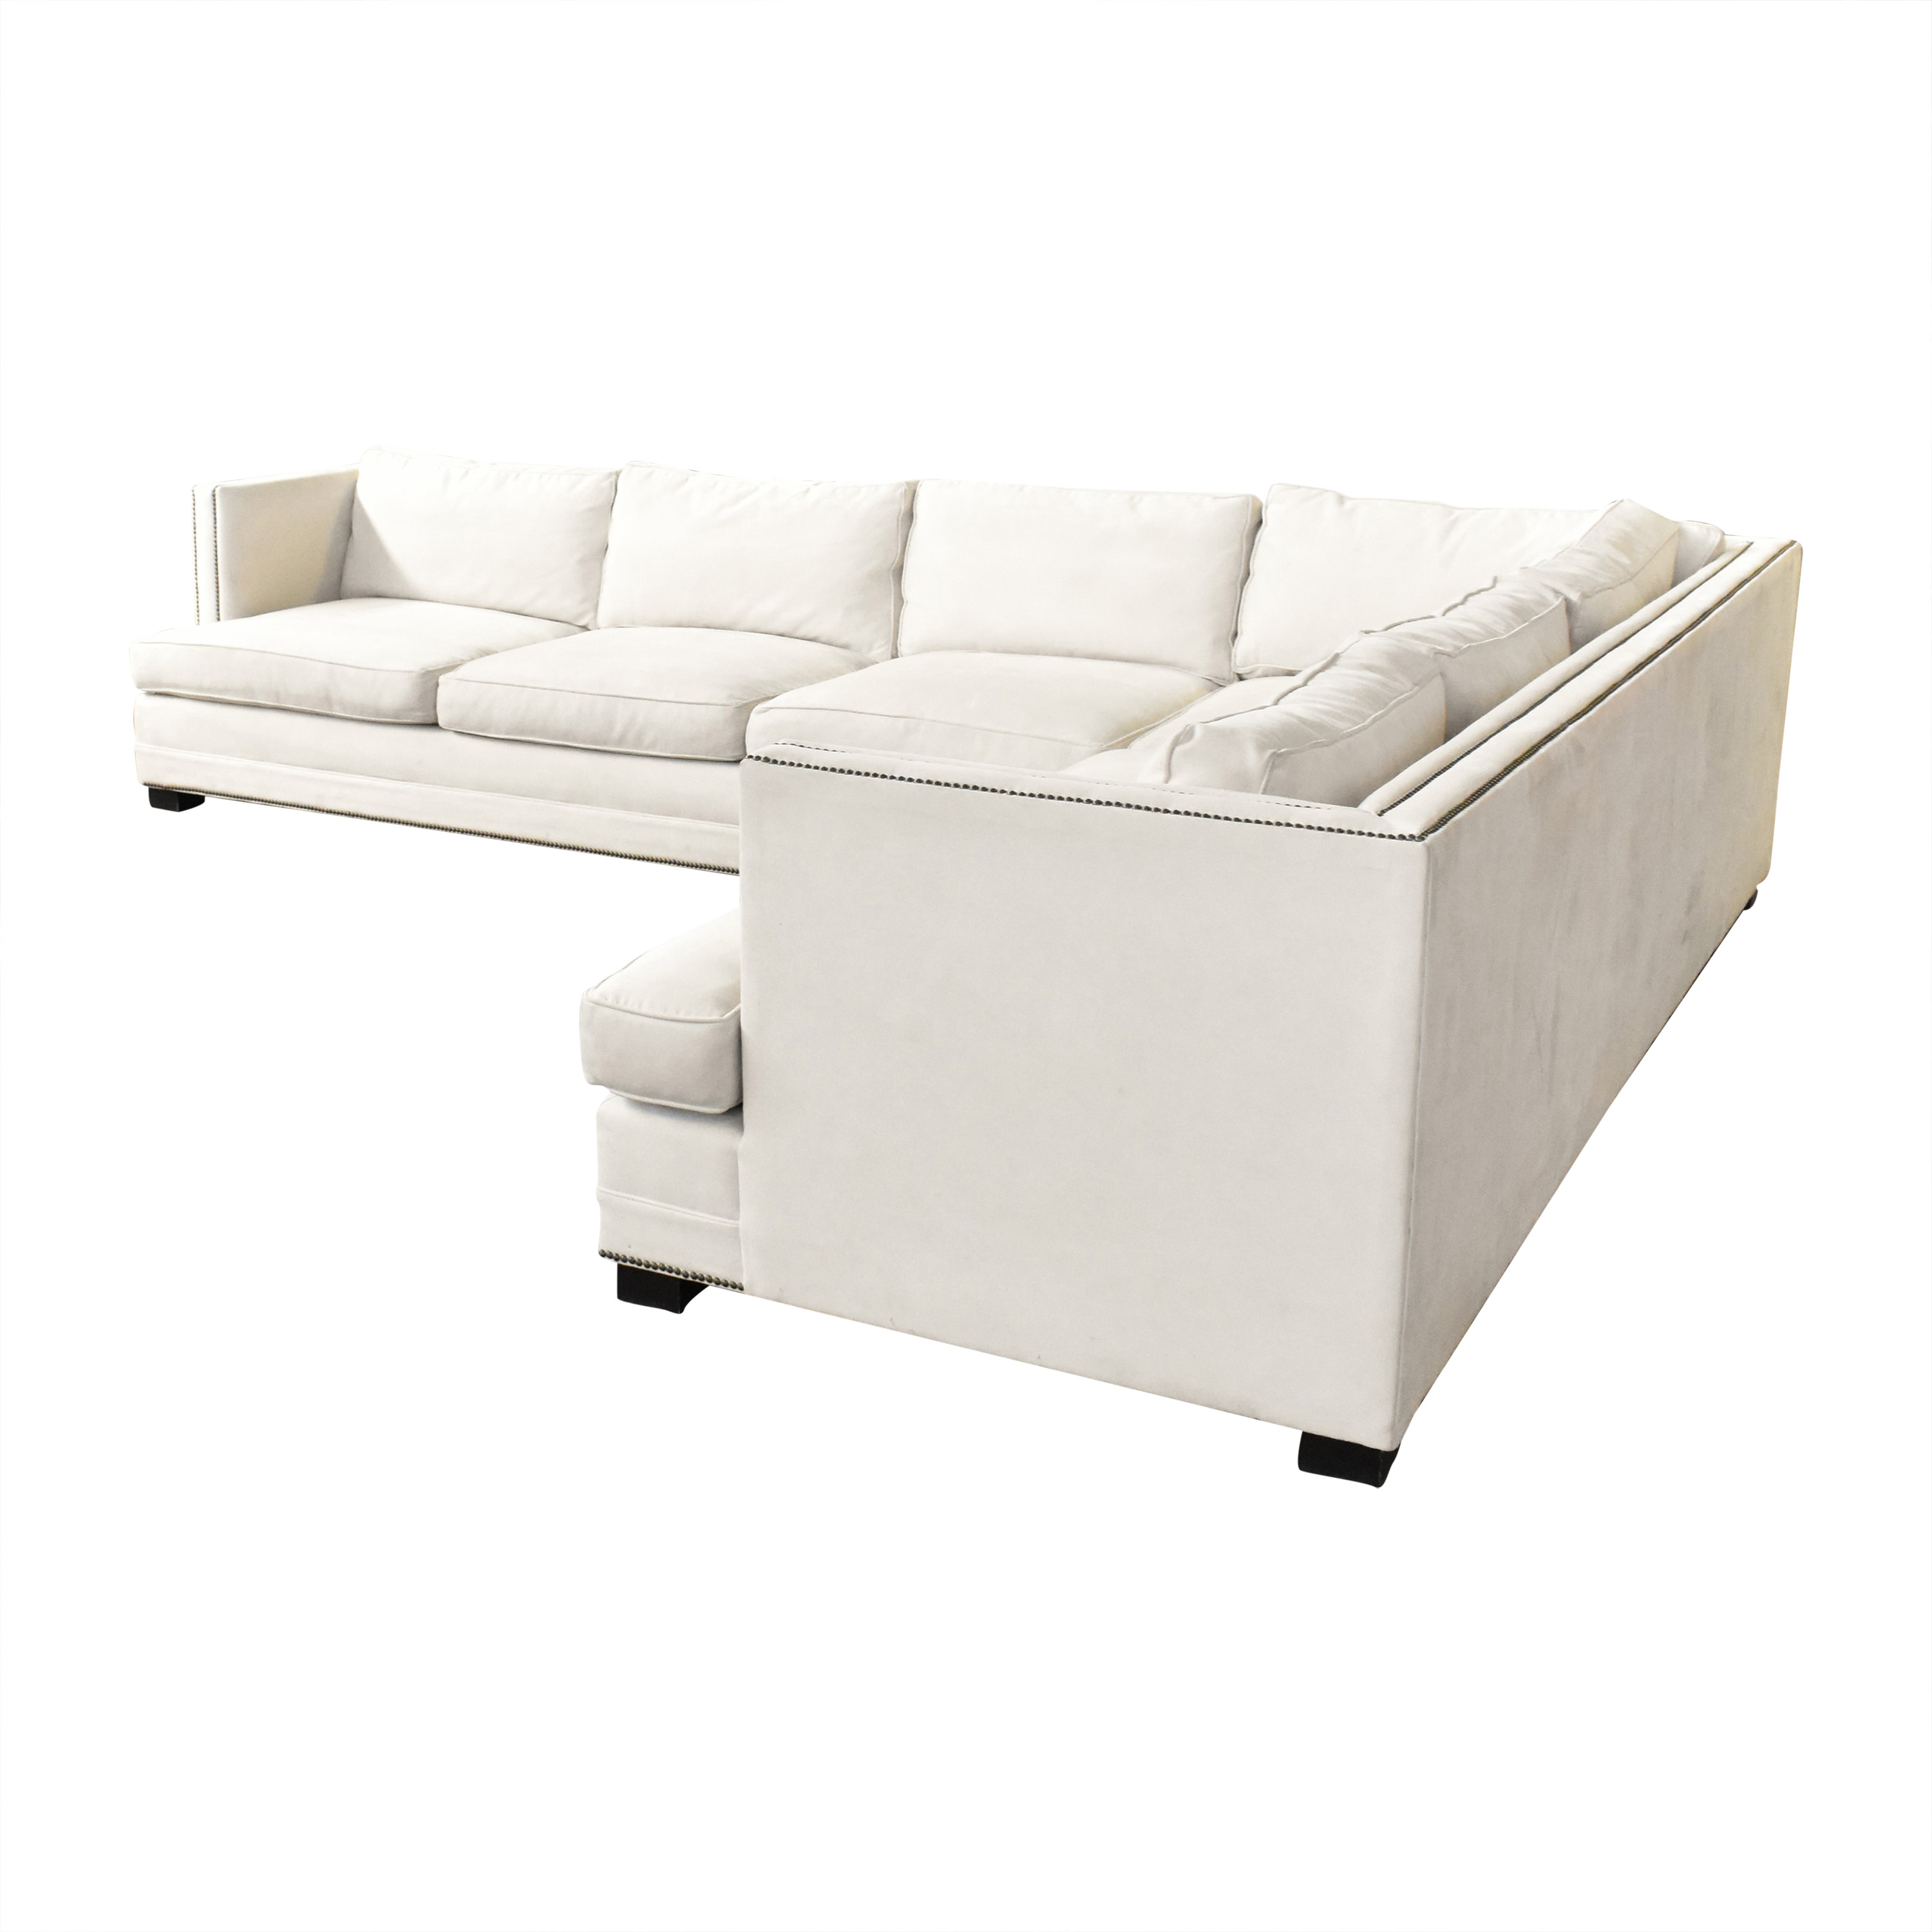 Restoration Hardware Restoration Hardware Keaton Sectional Sofa by Mitchell Gold + Bob Williams nj